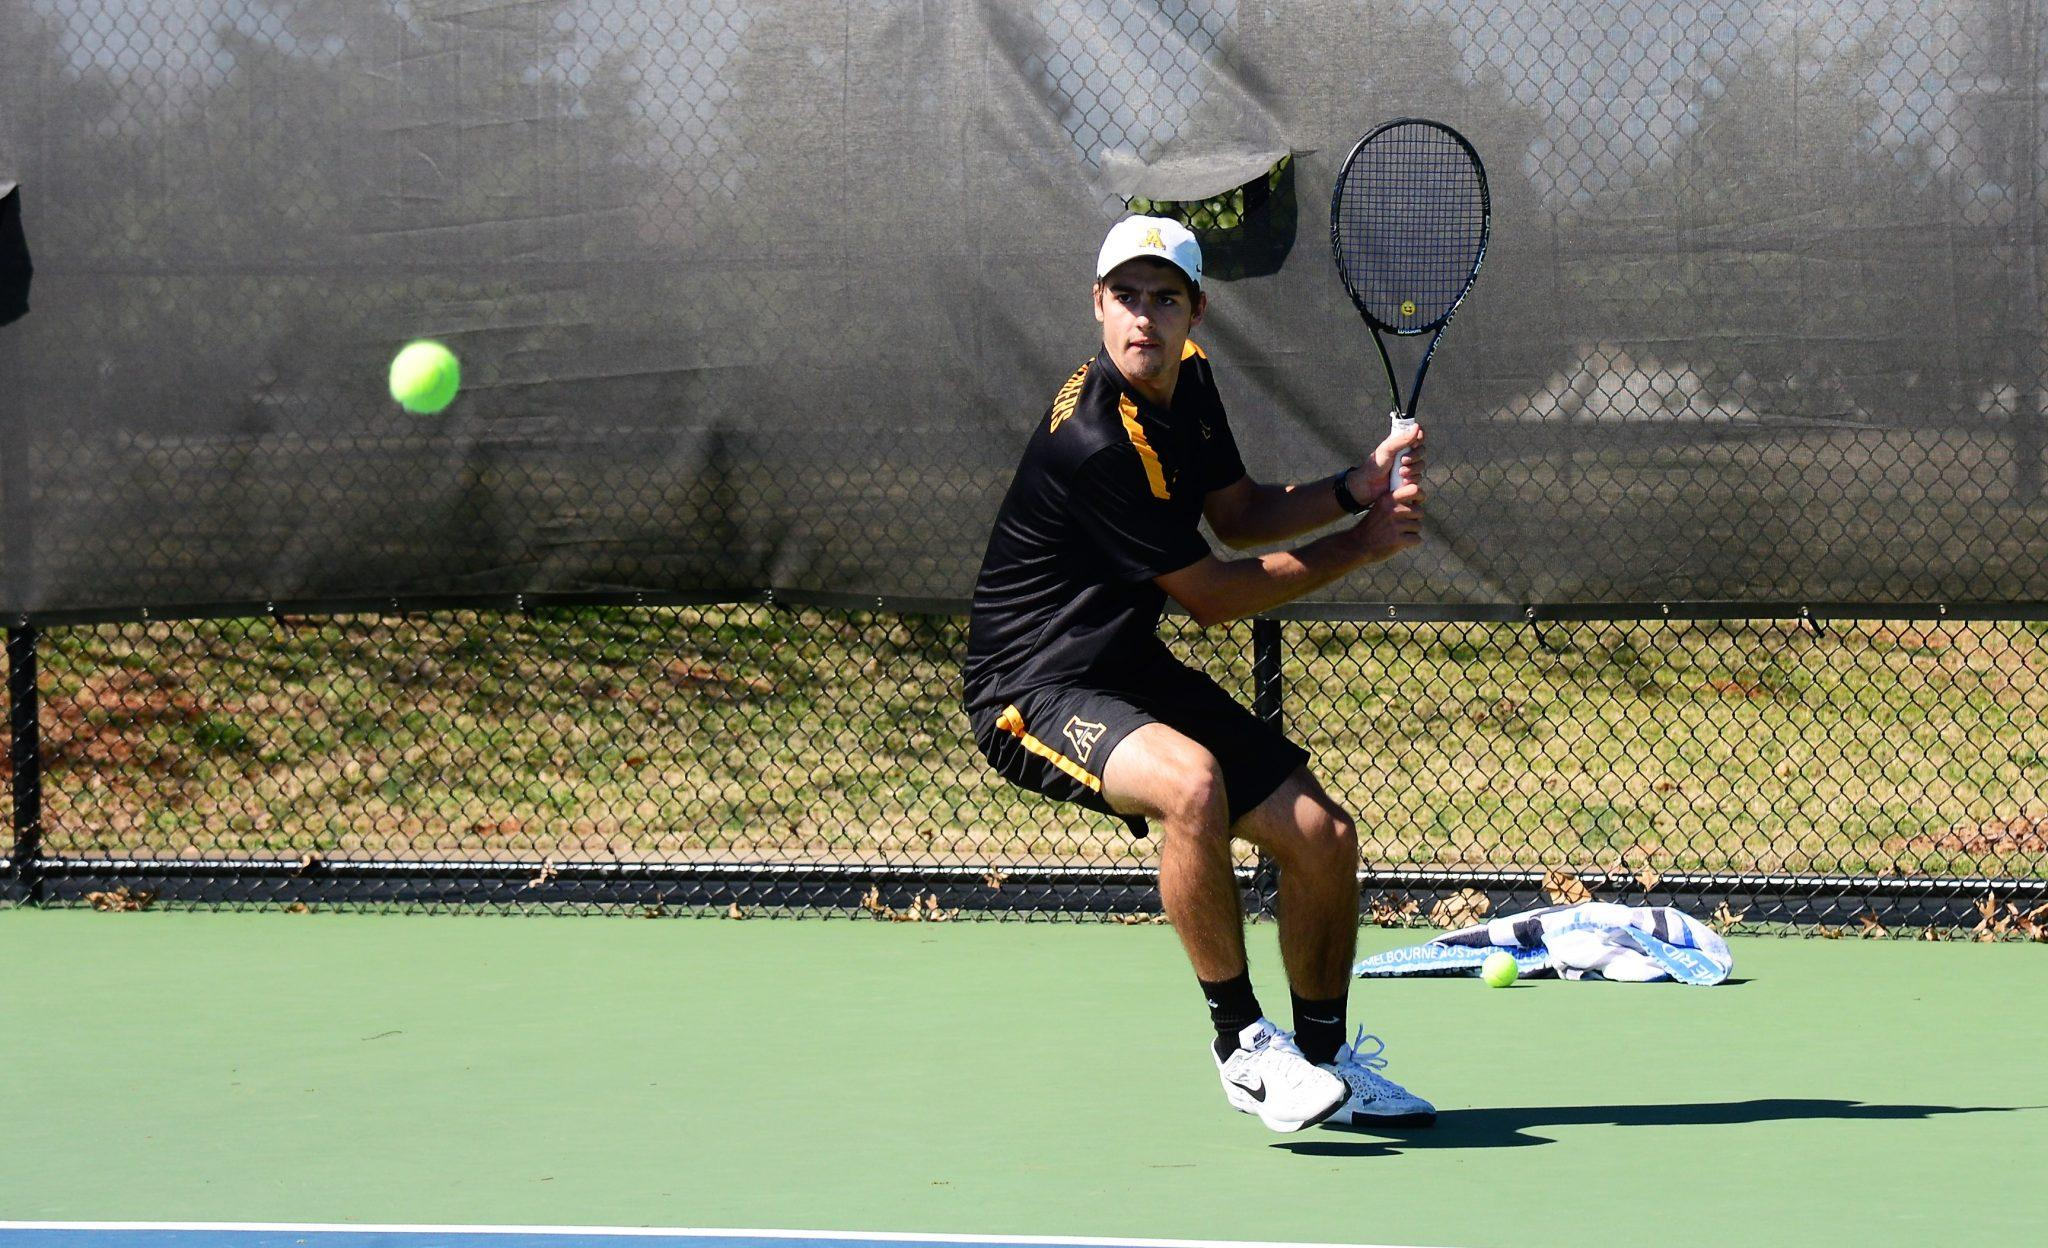 Alex+Pavkovich+helped+the+Mountaineers+take+their+Friday+match+